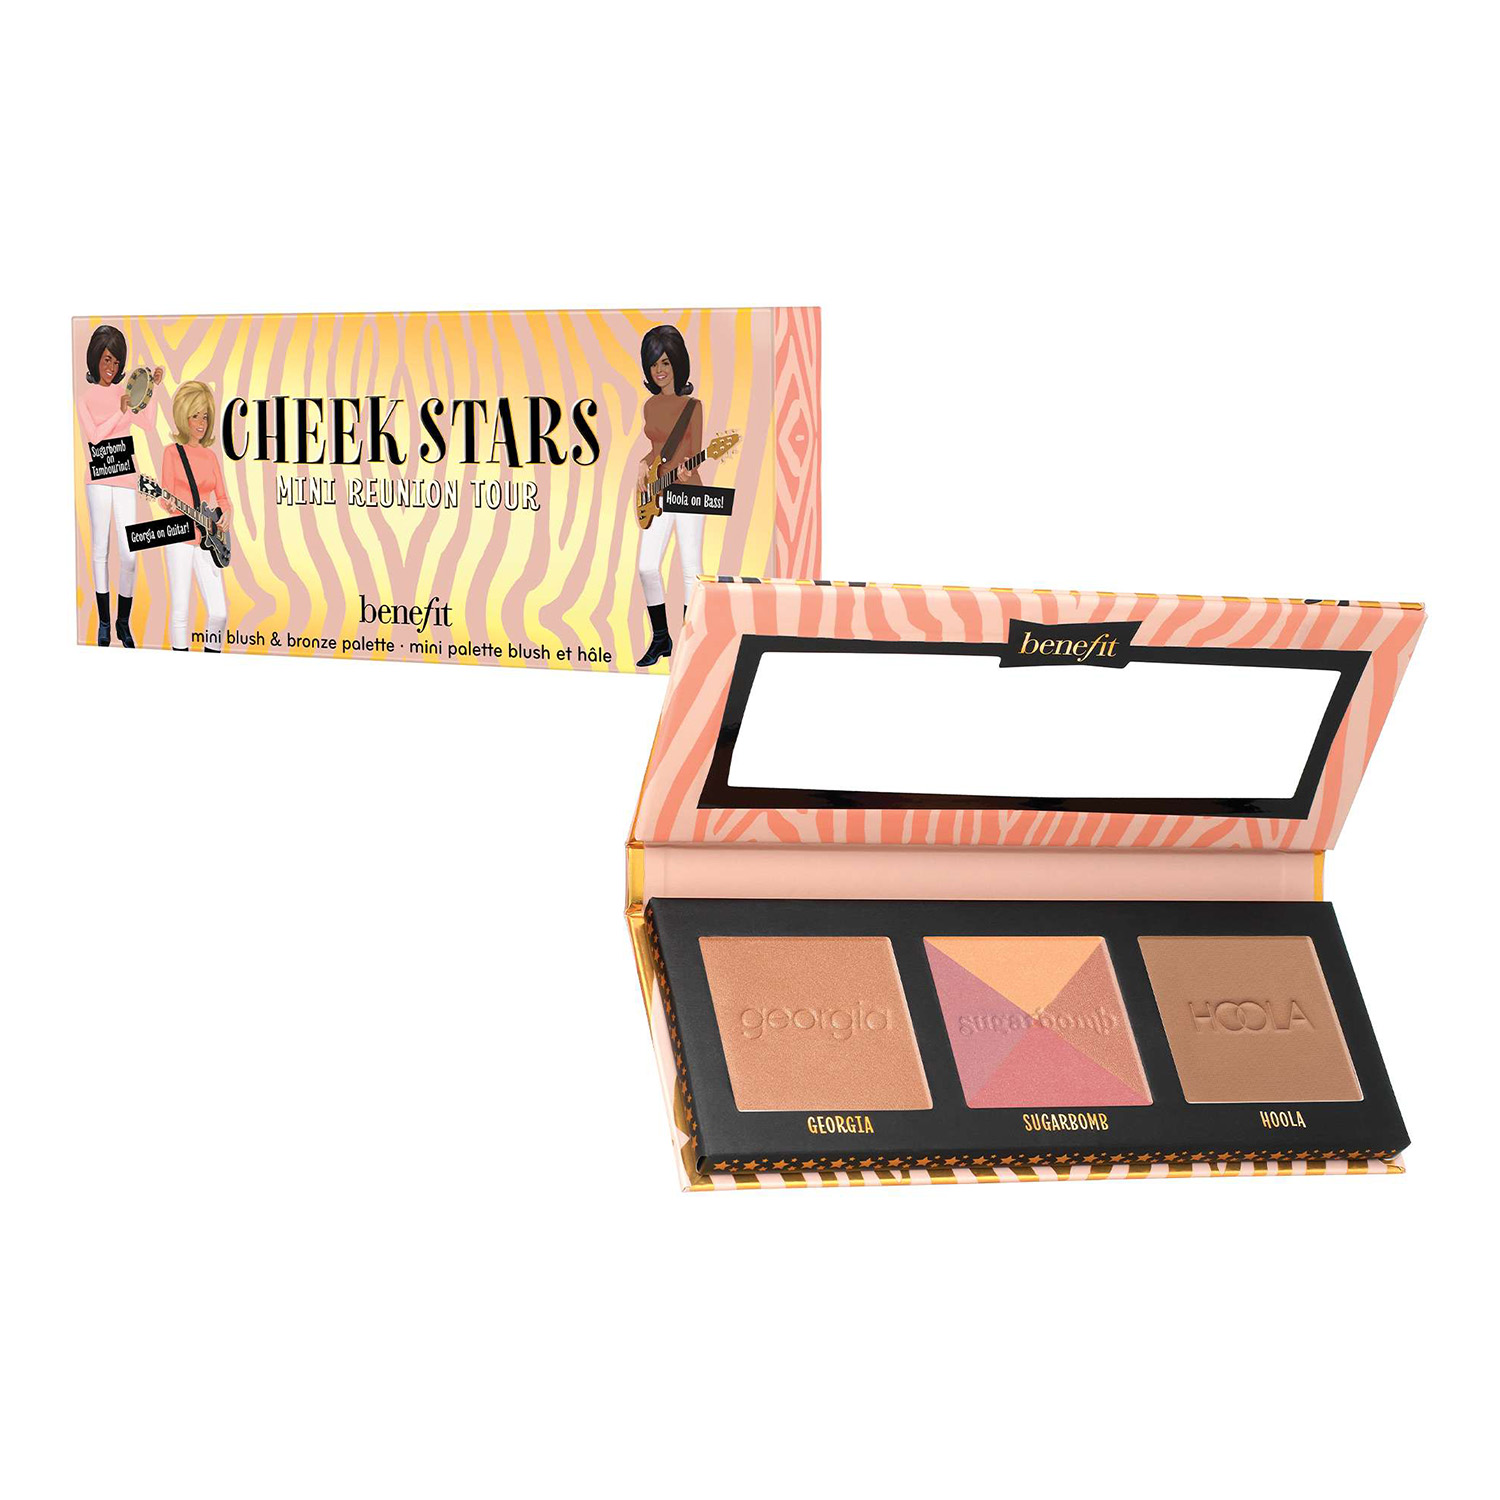 Mini paleta de coloretes, bronceadores e iluminadores Mini Cheek Starts Reunion Tour de Benefit